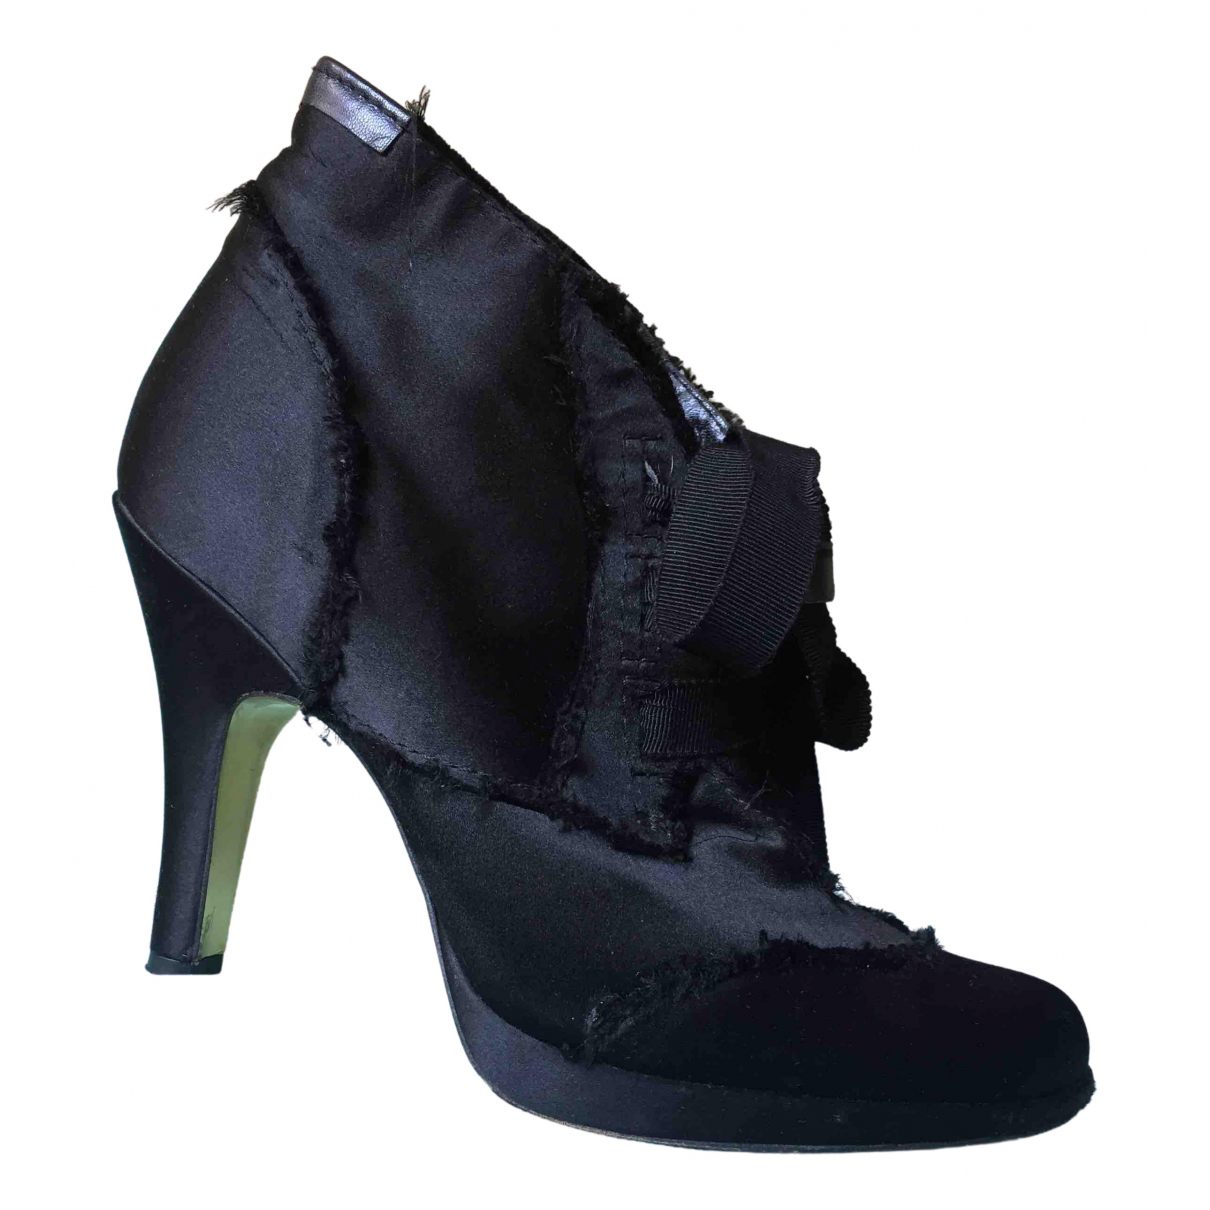 Pedro Garcia \N Black Cloth Boots for Women 36 EU